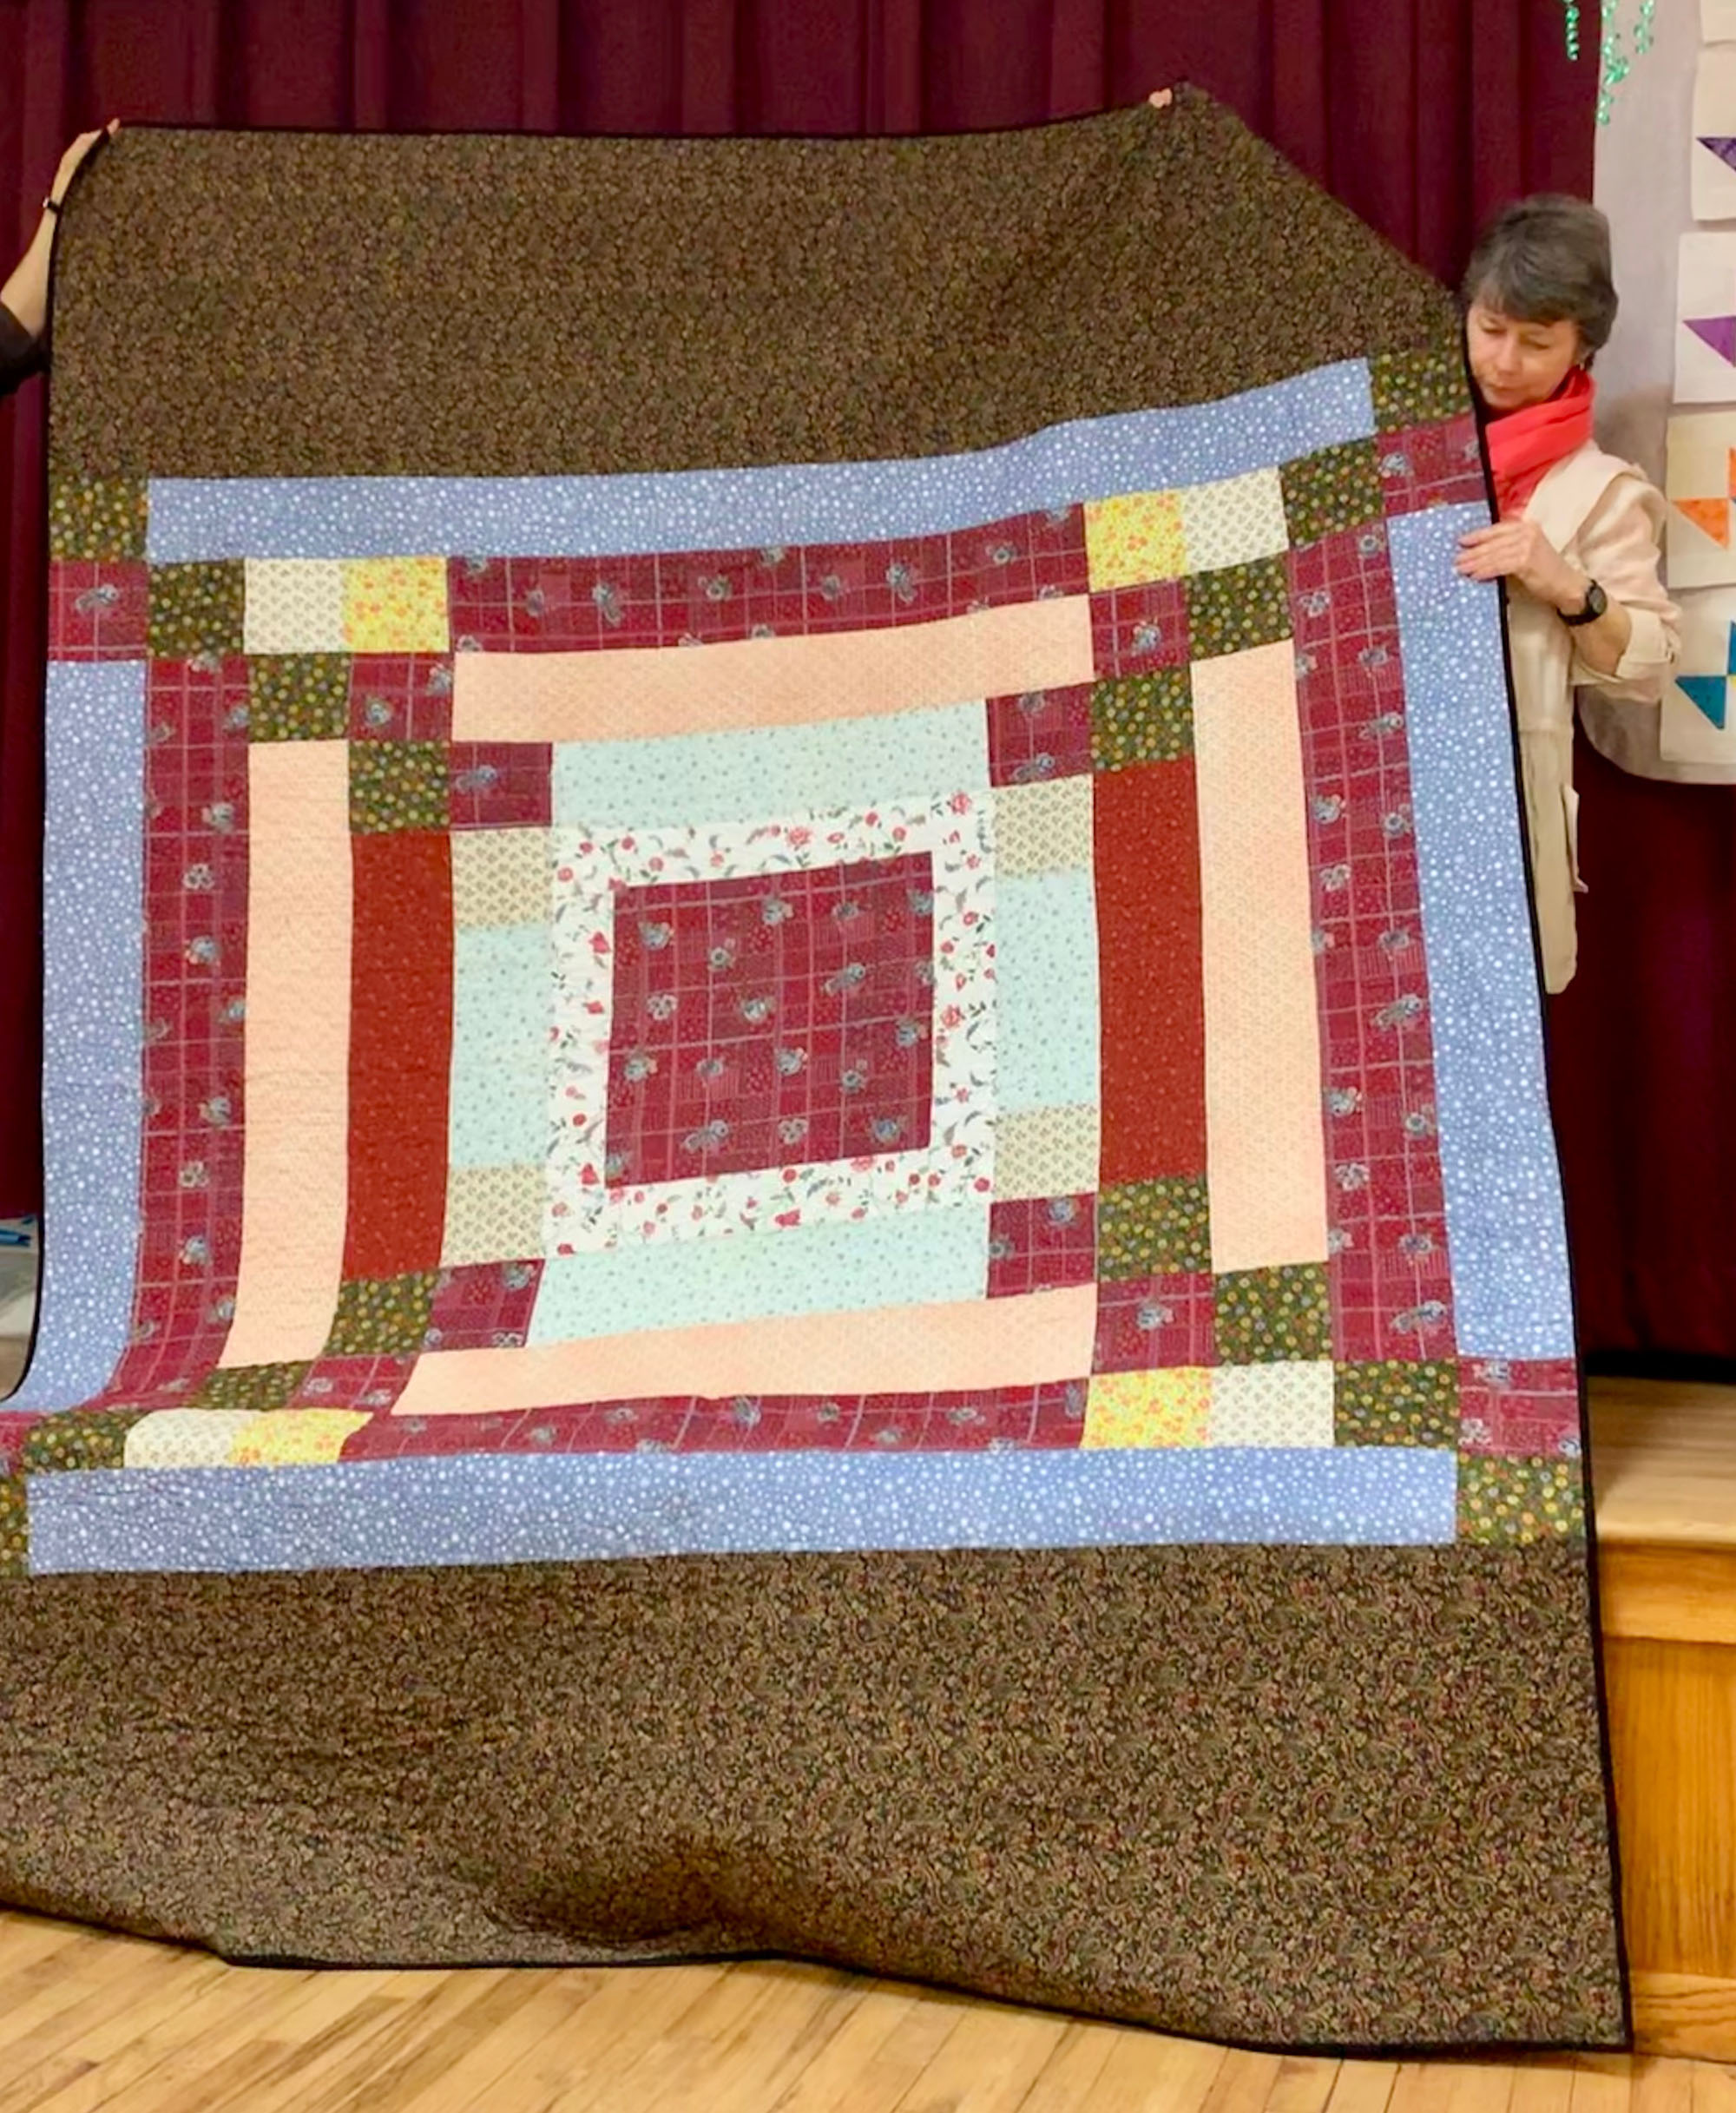 Completed Comfort Quilt